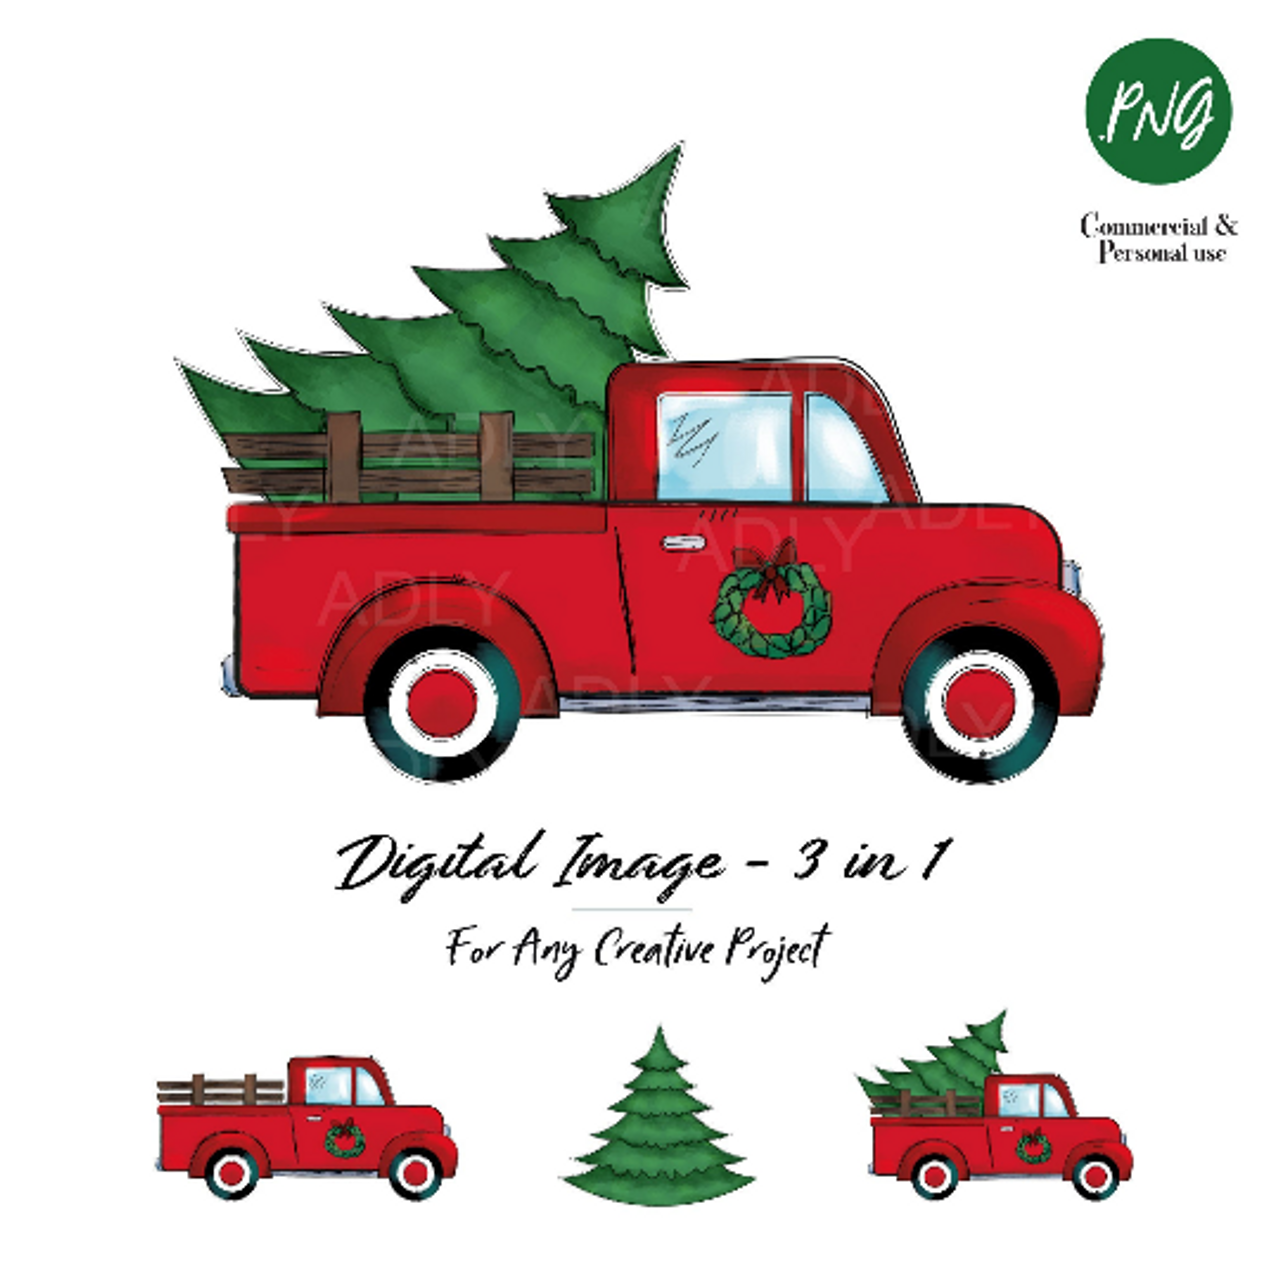 Christmas Sublimation Red Truck With Christmas Tree Wreath Vintage Truck Watercolor Doodle Art Vintage Christmas Shirts Decor Transfer Adly Invitations And Digital Party Designs